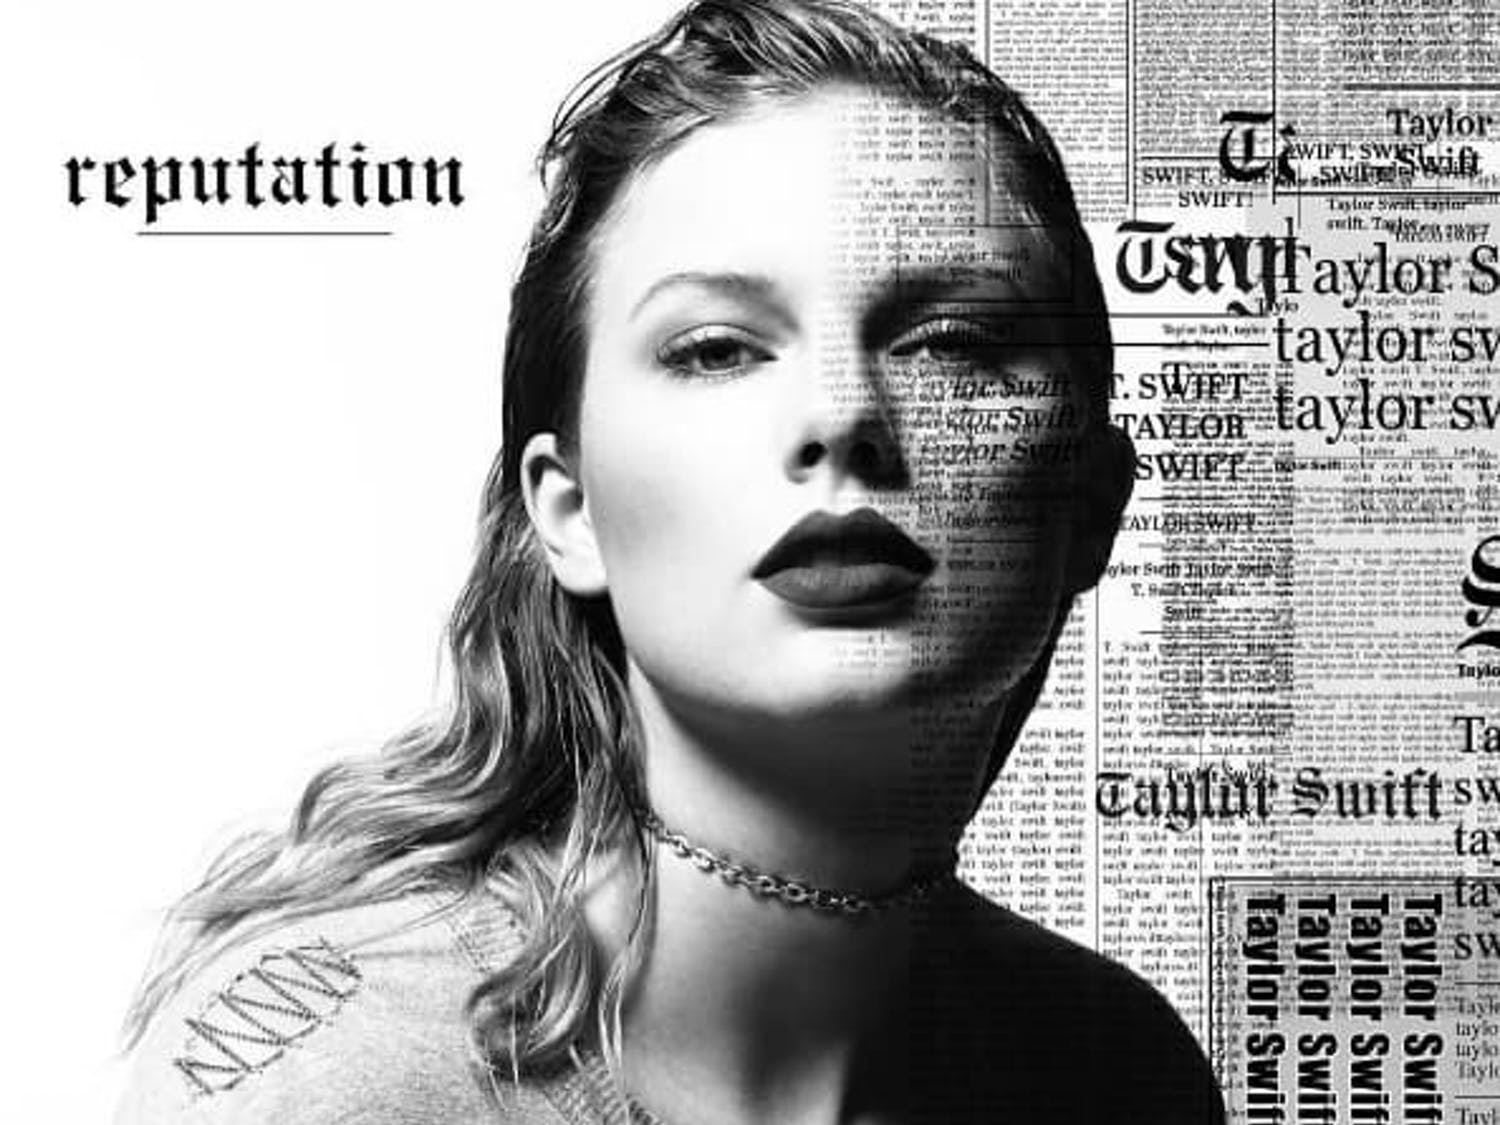 Swift's determination to create a new image for herself comes at the expense of originality.